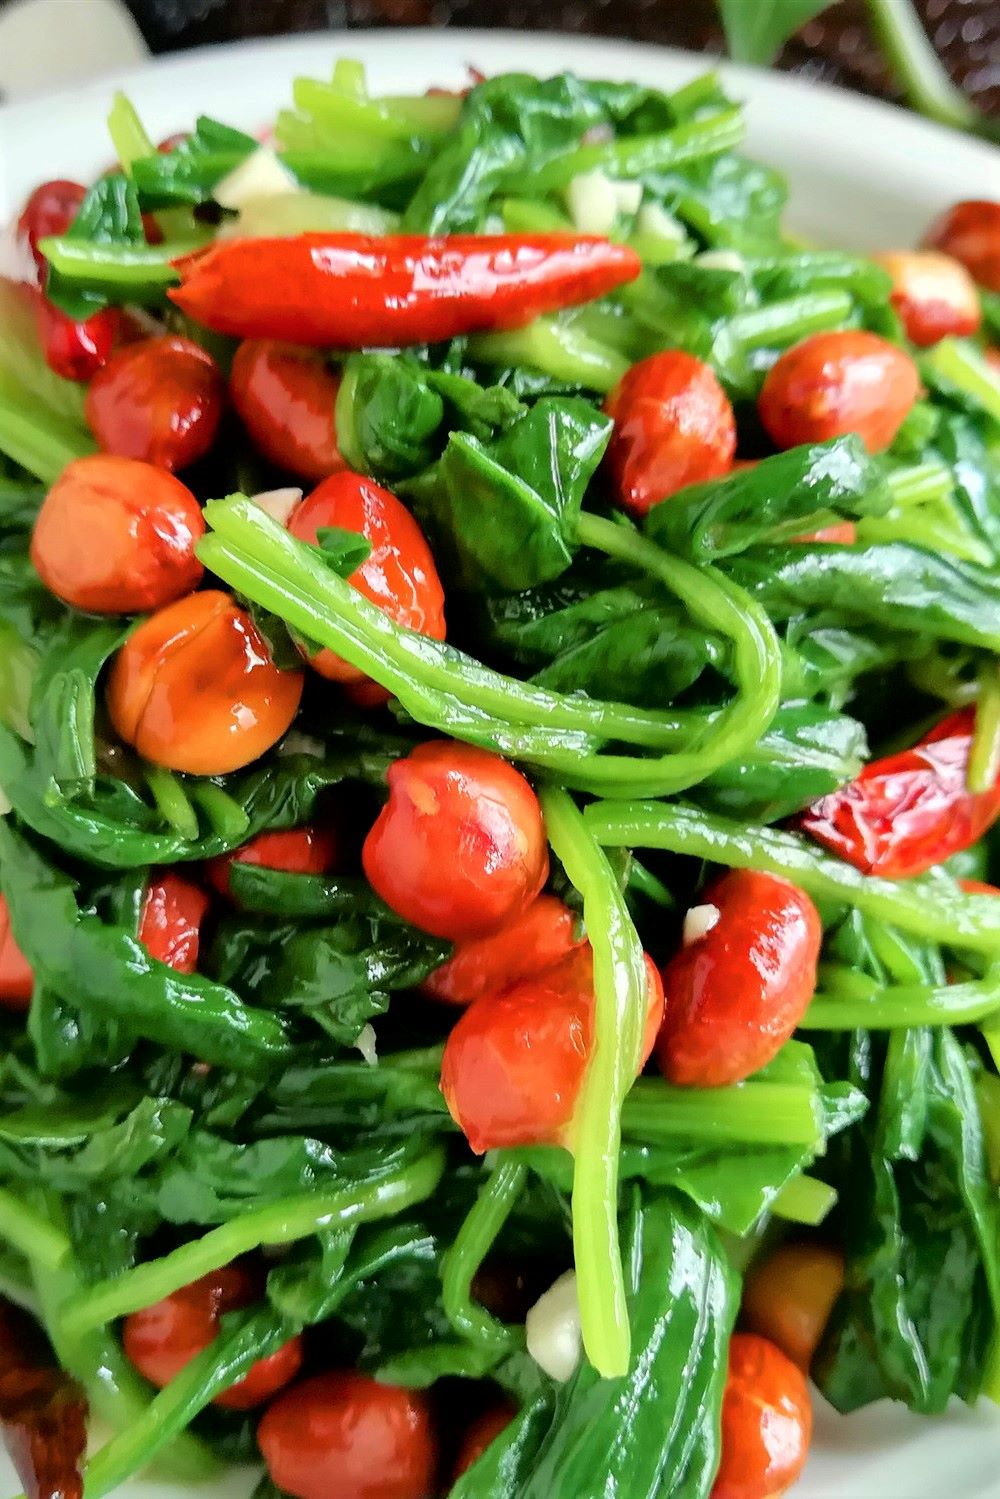 Ingredients:  500 grams of spinach, 1 small bowl of peanuts, moderate oil and salt, 1 tablespoon of sesame oil, 2 cloves of garlic, 10 dried chili peppers, 1 tablespoon of light soy sauce, half a tablespoon of sugar, 1 tablespoon of rice vinegar